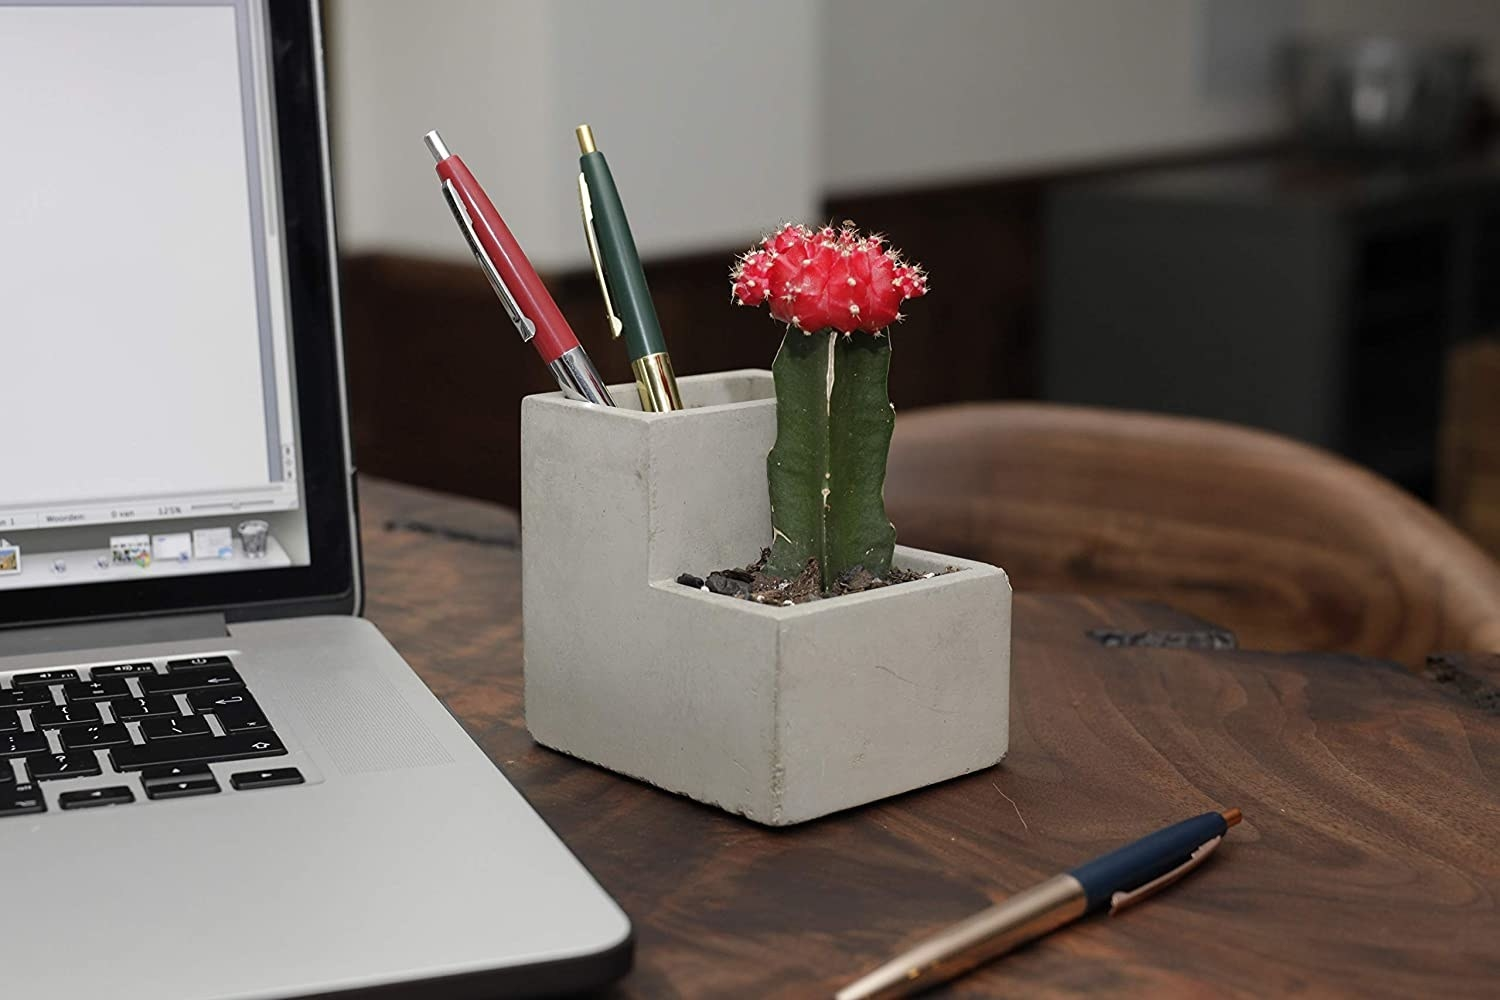 The planter sits on a desk with a small cactus in the front and two pens in the back section